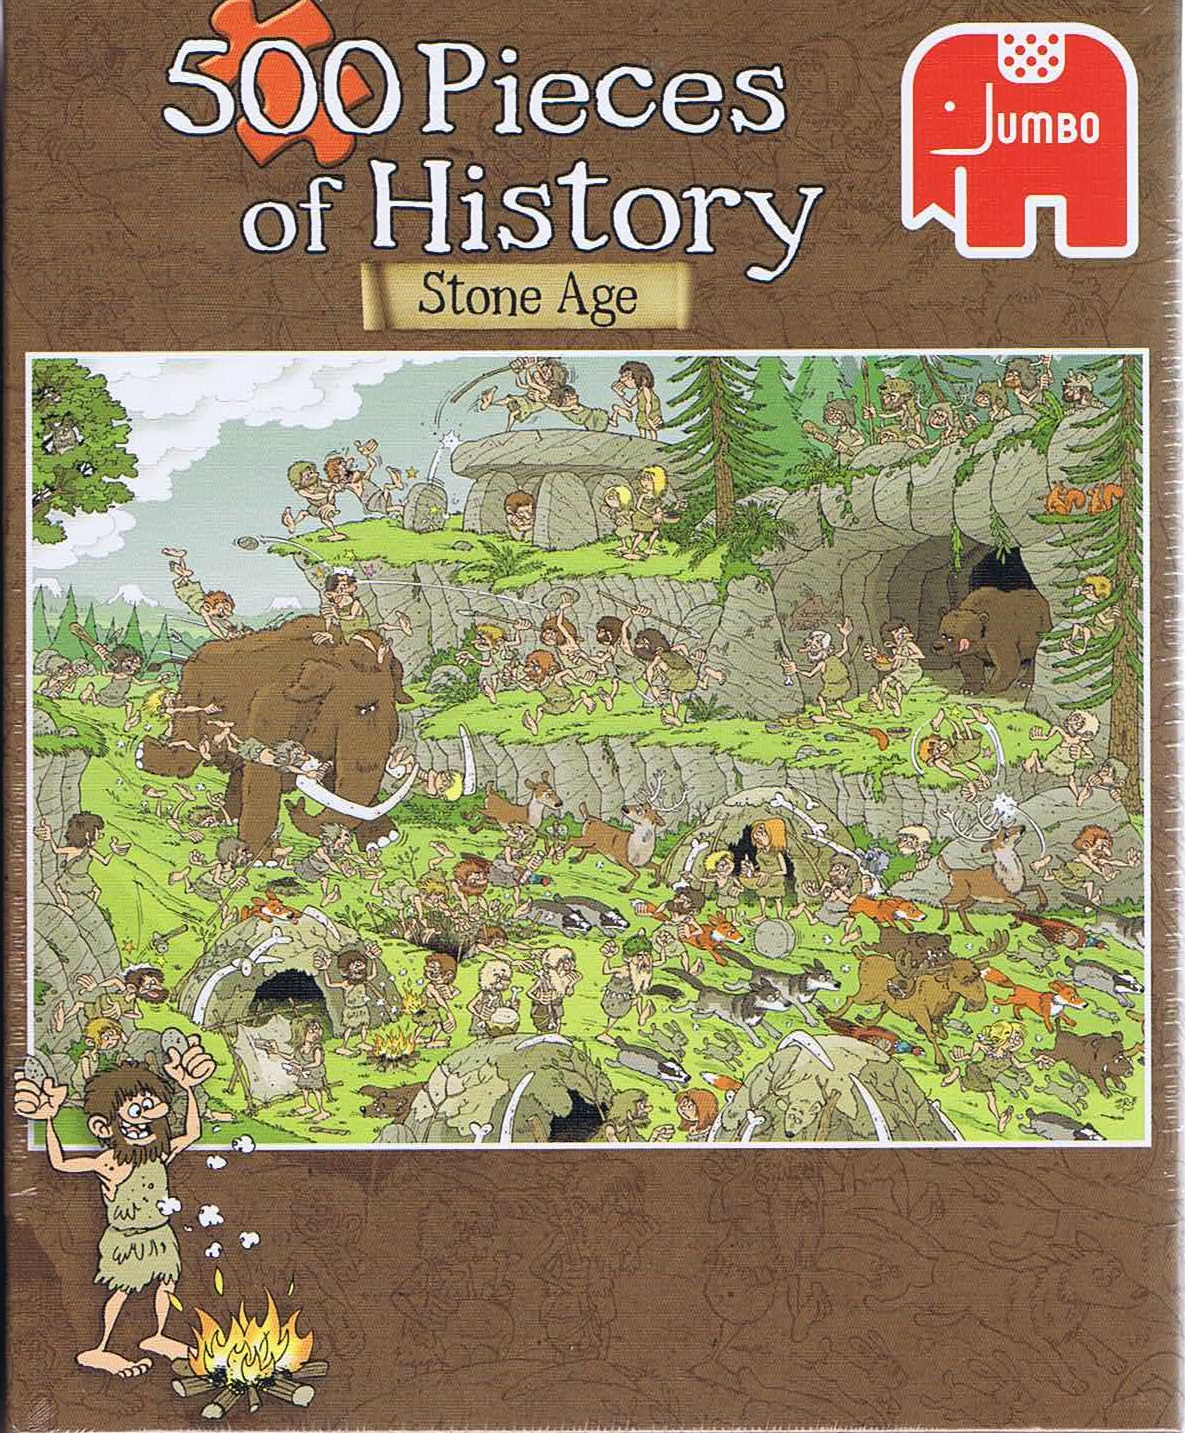 Image of 500 pieces of History - Stoneage